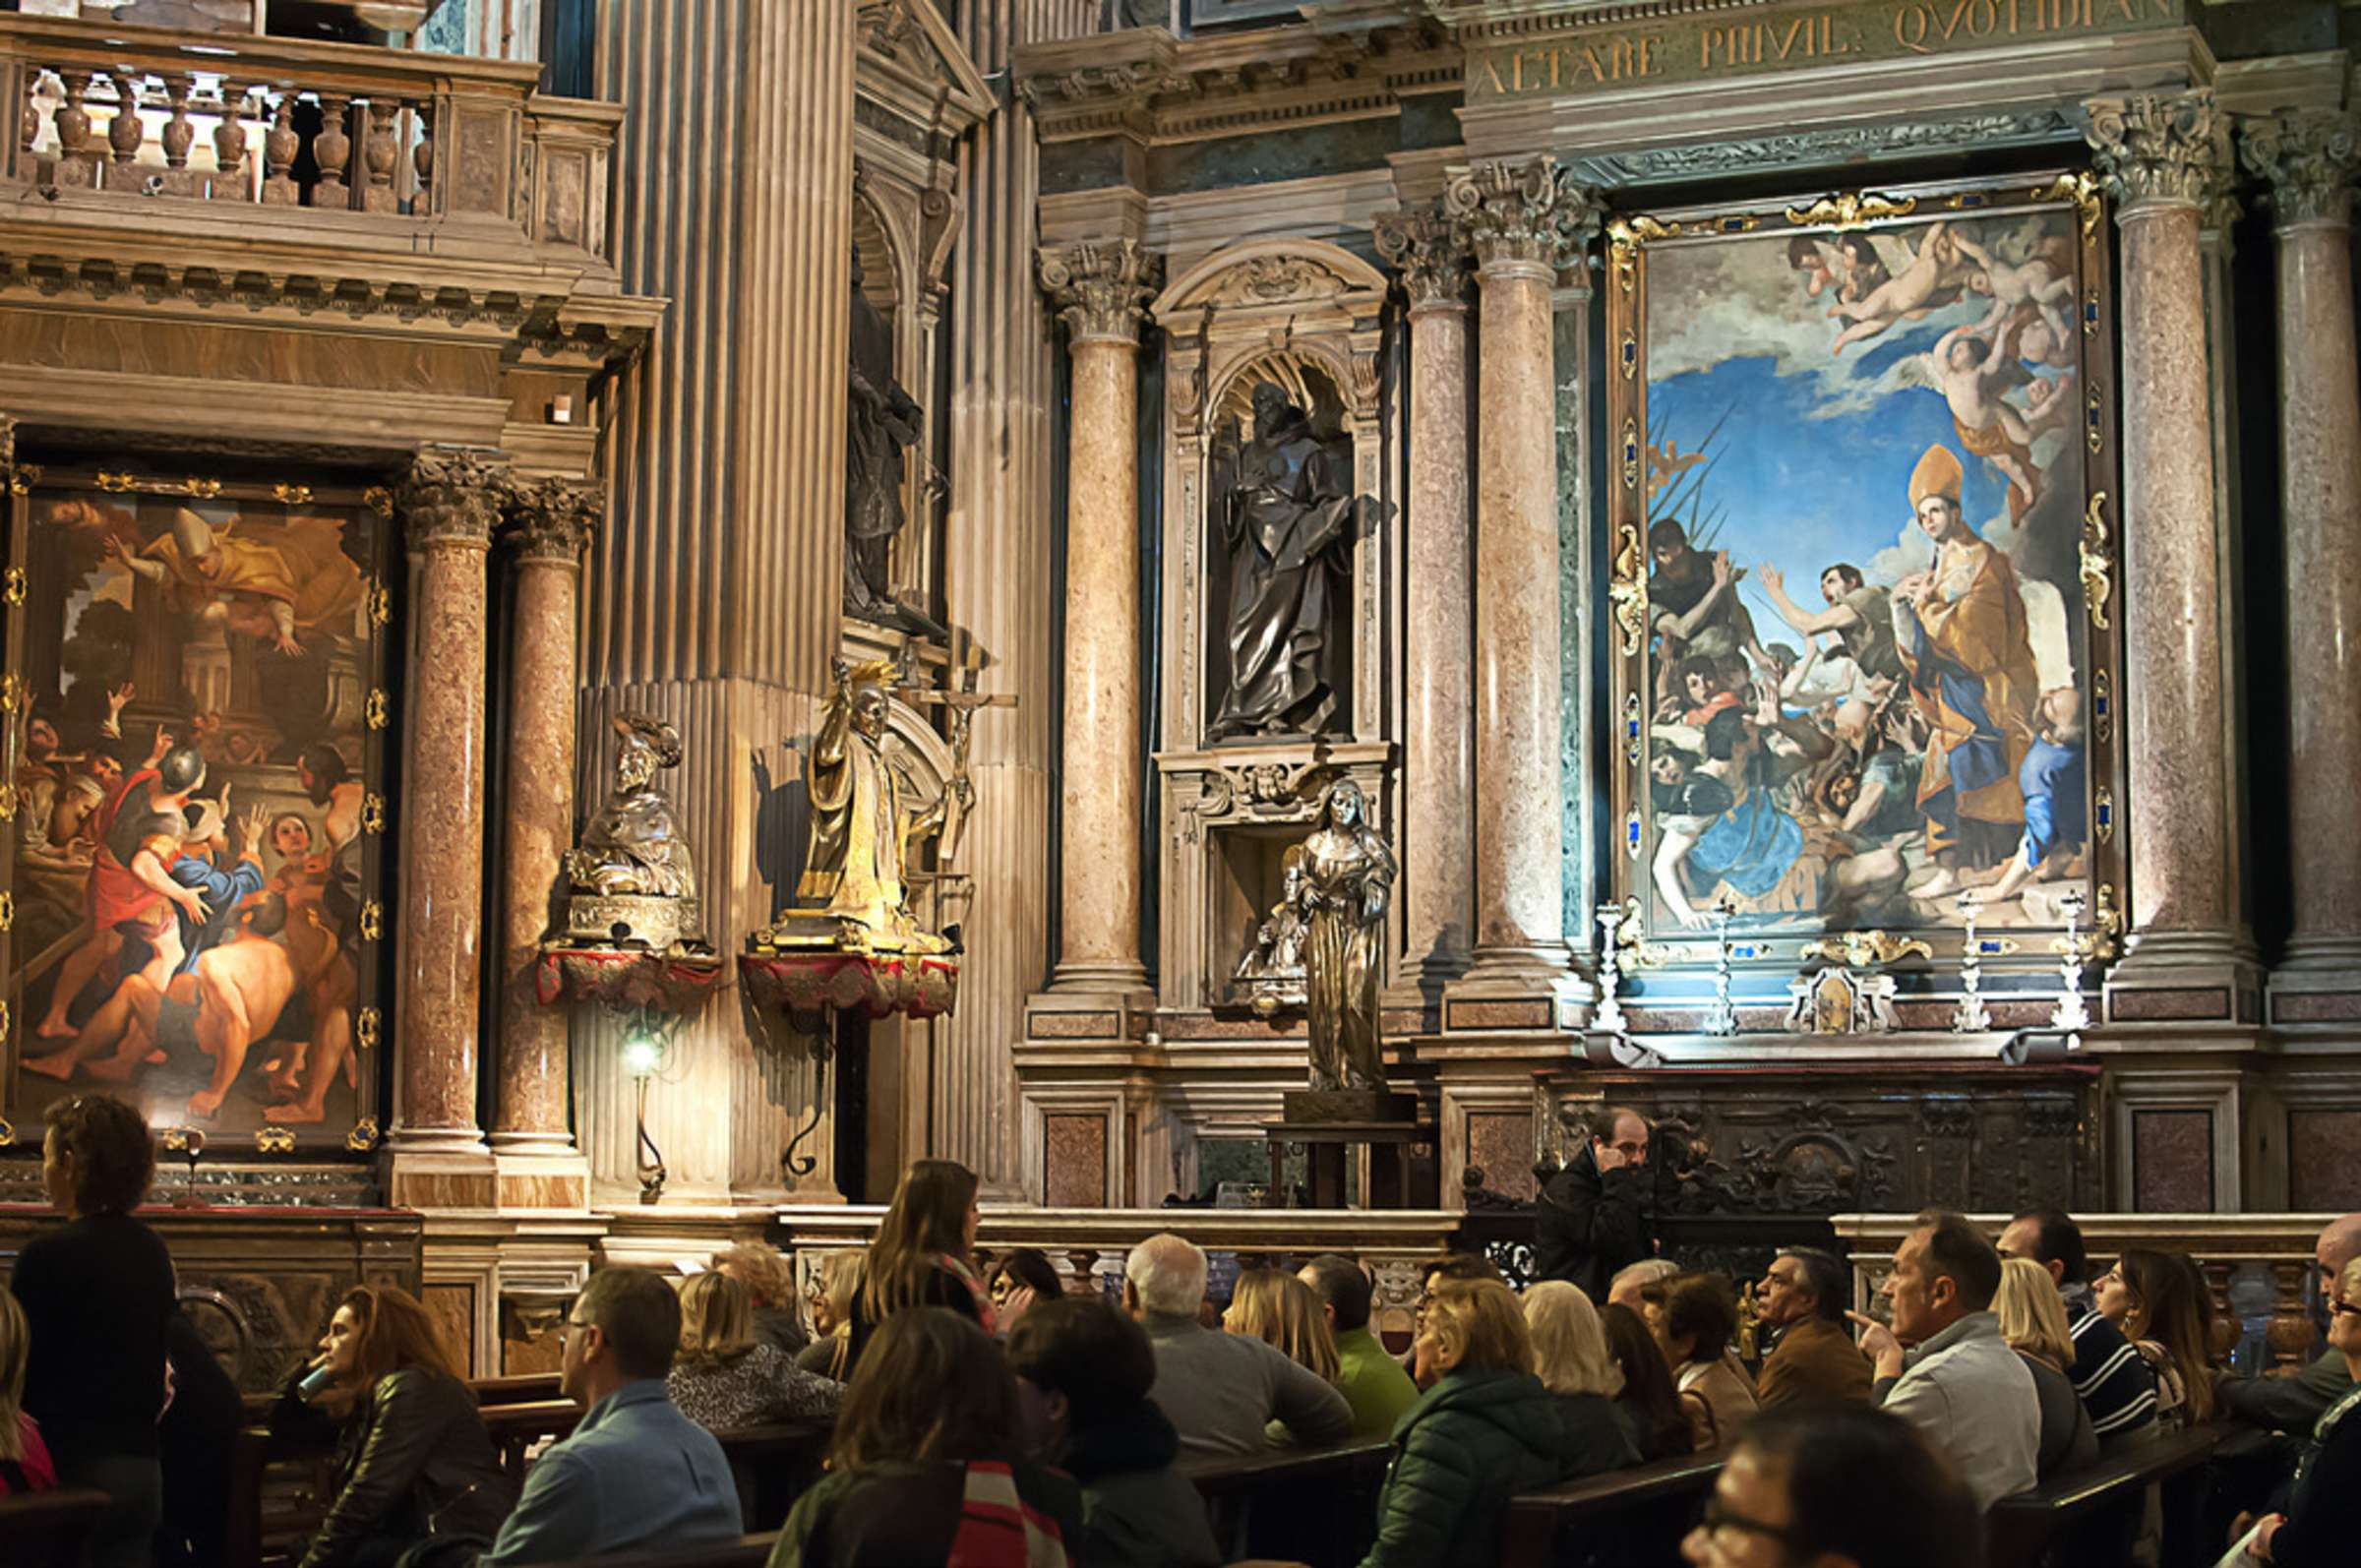 Caravaggio and the Baroque in Naples